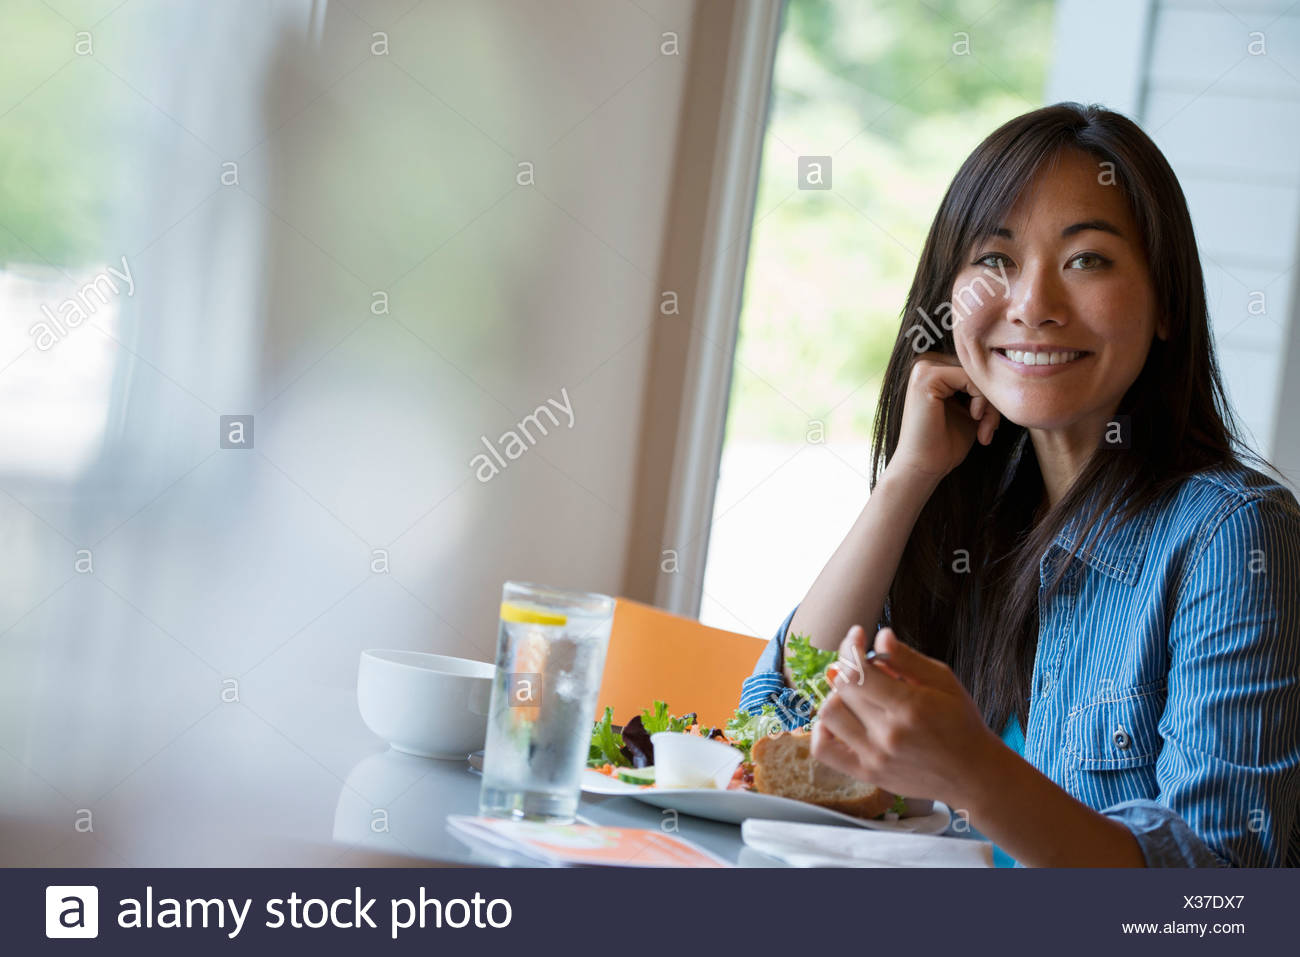 A woman seated eating in a cafe. Stock Photo